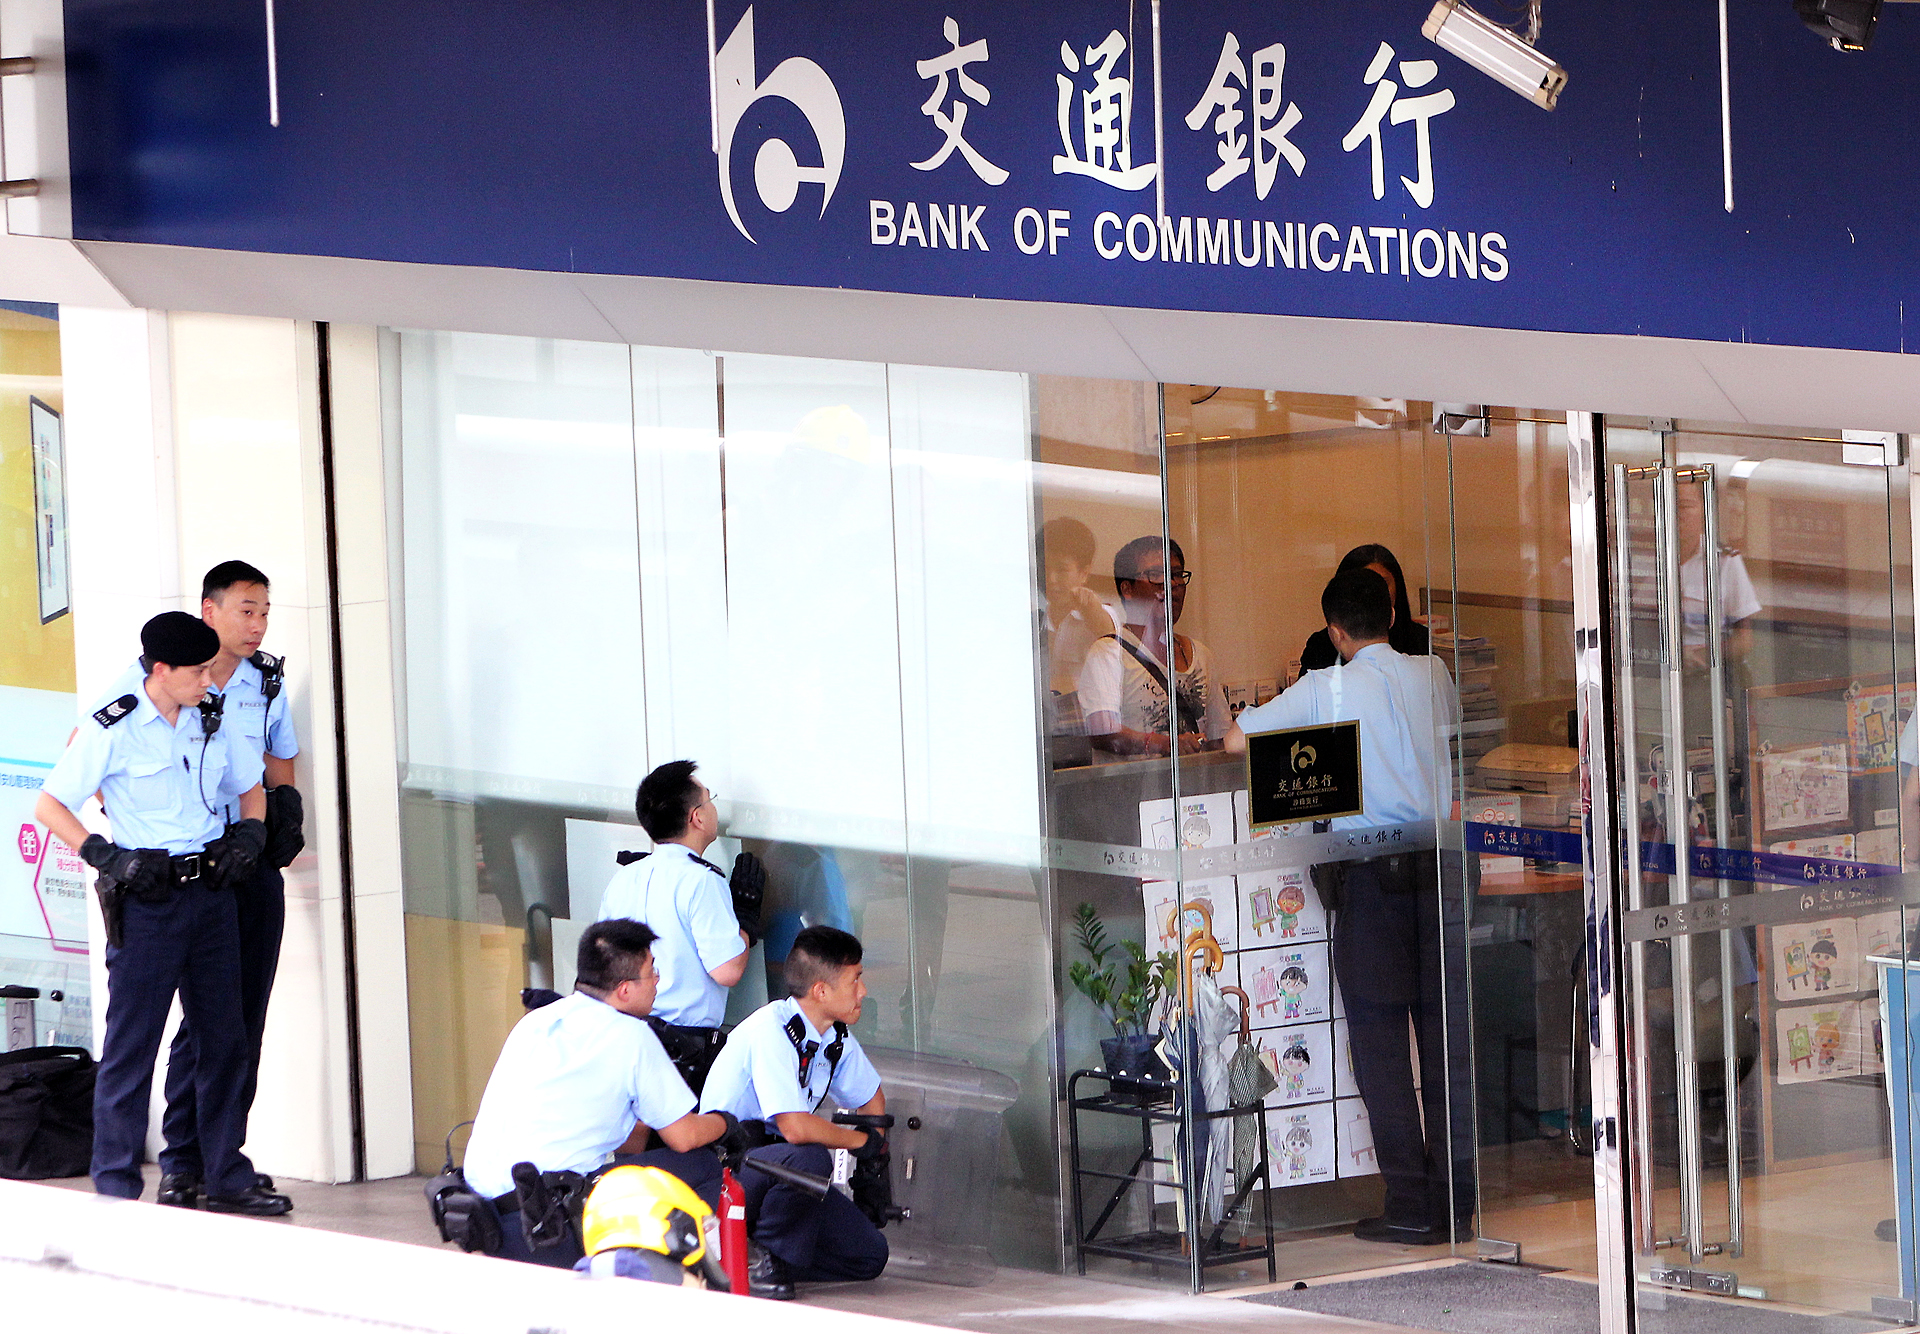 Policemen and firemen standing by outside where the suspect was said to have taken bottles of a flammable liquid into a branch of the Bank of Communications at Lucky Plaza in Sha Tin. The man was later seen being led away by the police. 18JUN15